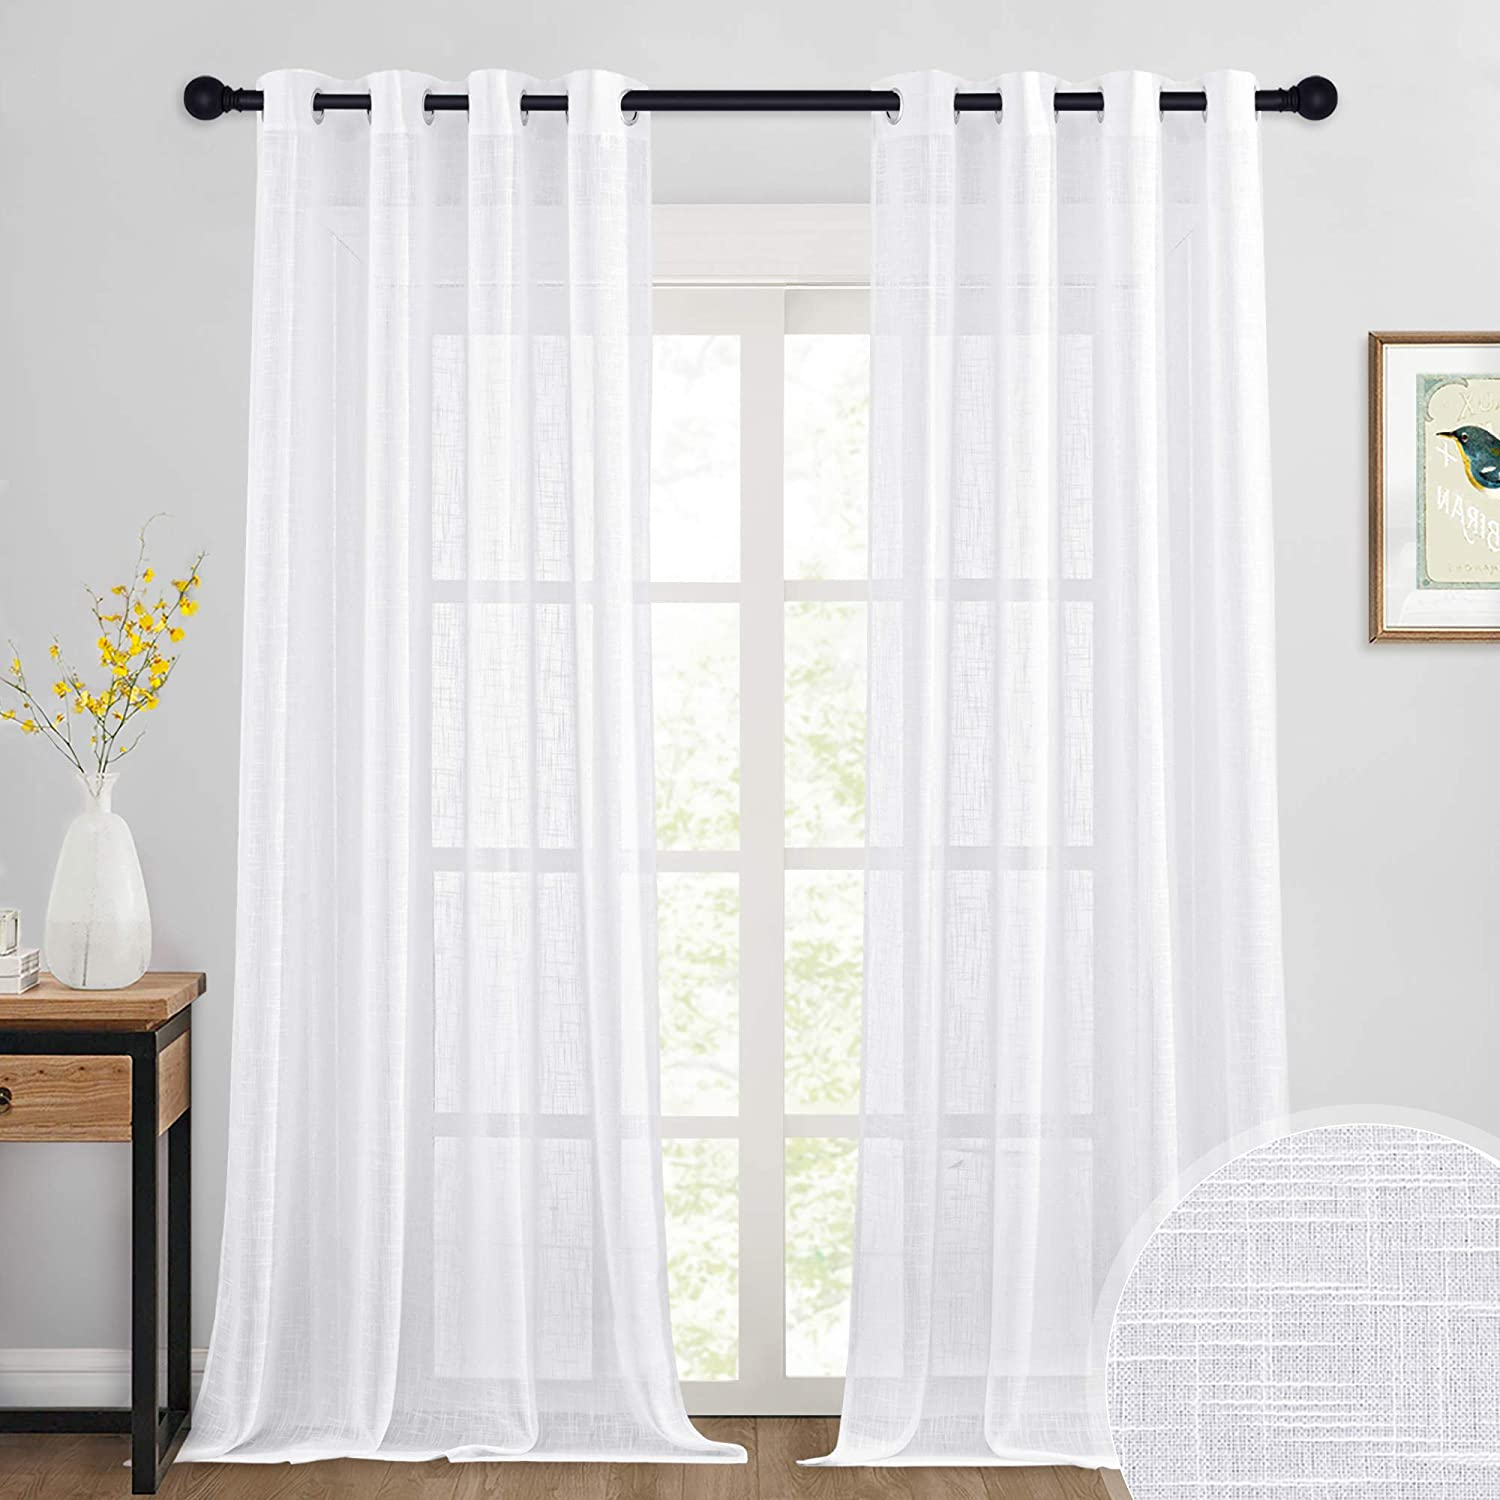 RYB HOME White Curtains Sheer - Linen Textured Curtains Privacy for Bedroom Christmas Windows Decor, Natural Light Flirt Panels for Patio Sliding Door Living Room, W 52 x L 95, 1 Pair